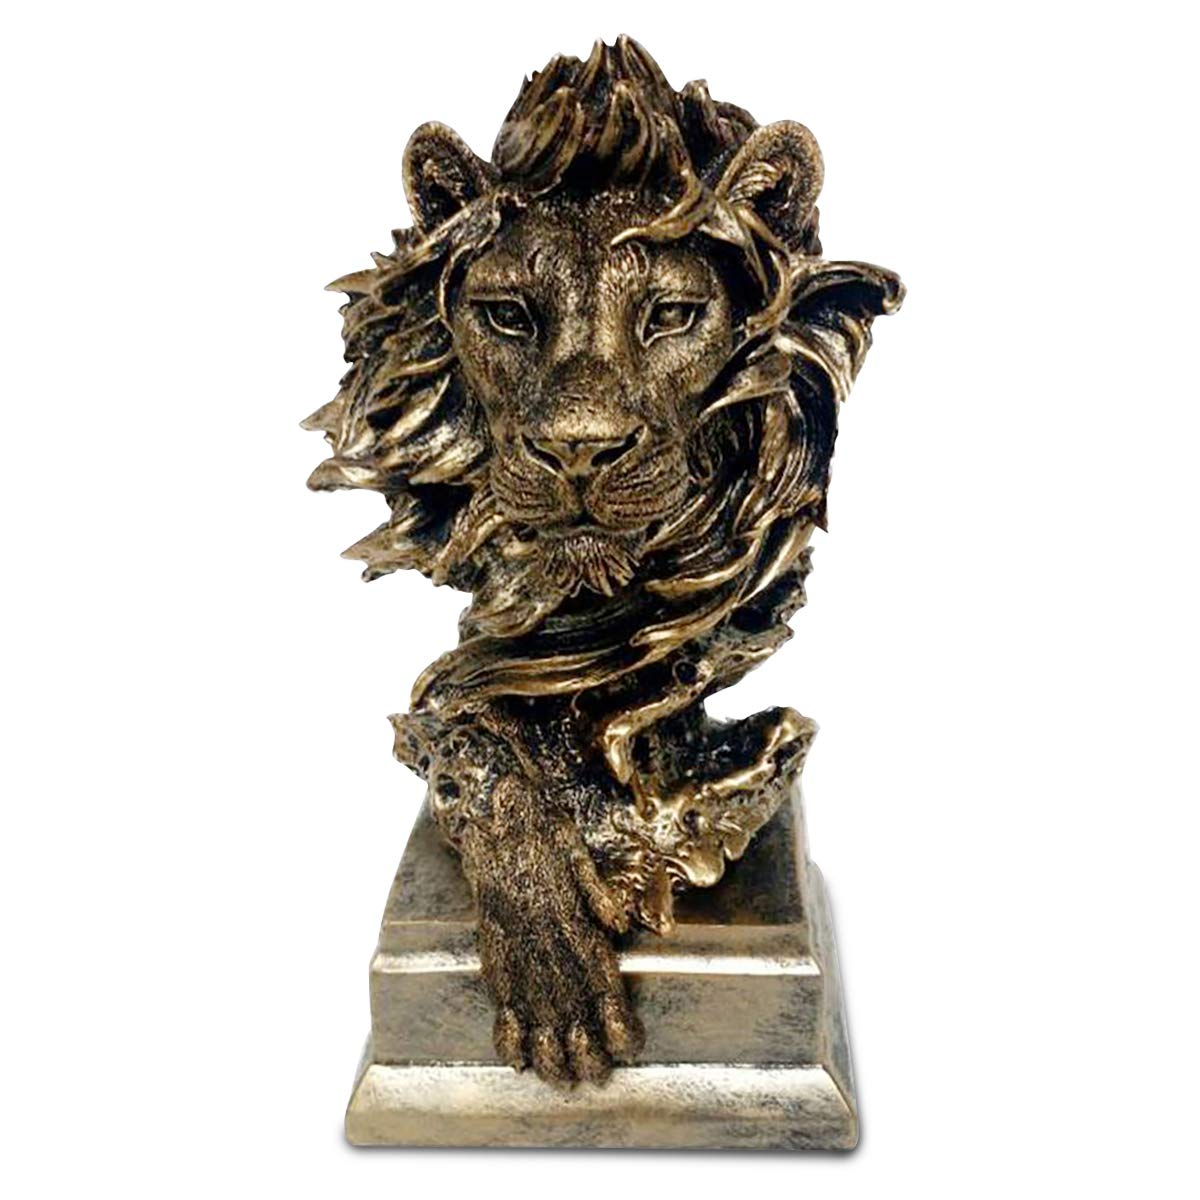 Baroque Royal Lion Head Statue, 12 Inch Lion Bust Collectible Figurine in Bronze, Lion Sculptures and Statues for Home and Office Desk Décor, Heavy Duty Resin Statuette Figure Well Packed